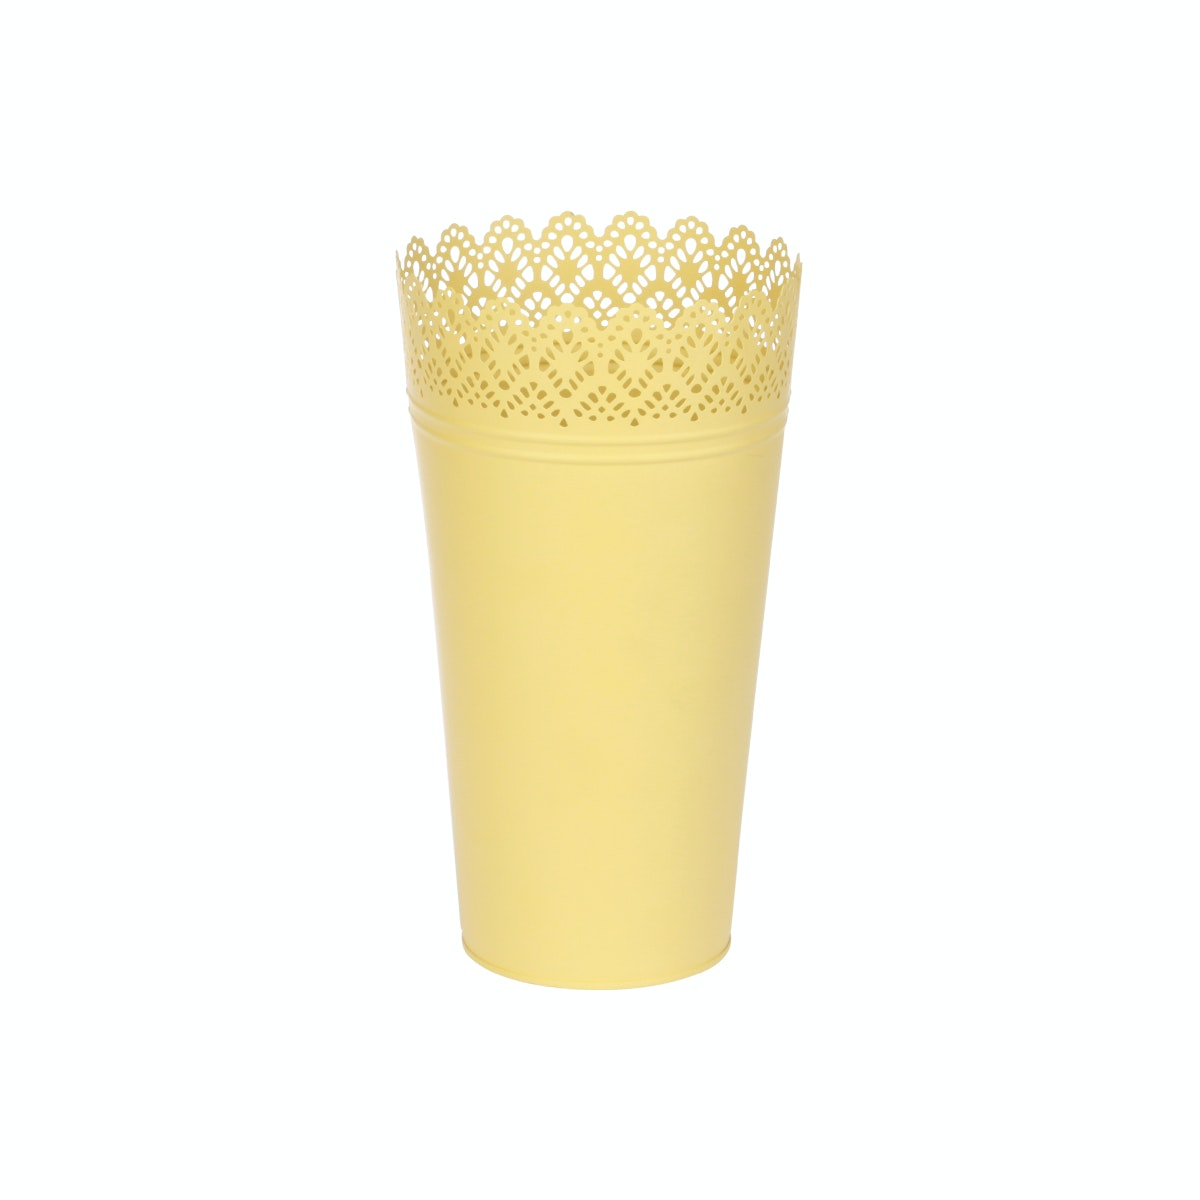 Informa Vase Pot Round 903Y Yellow 26